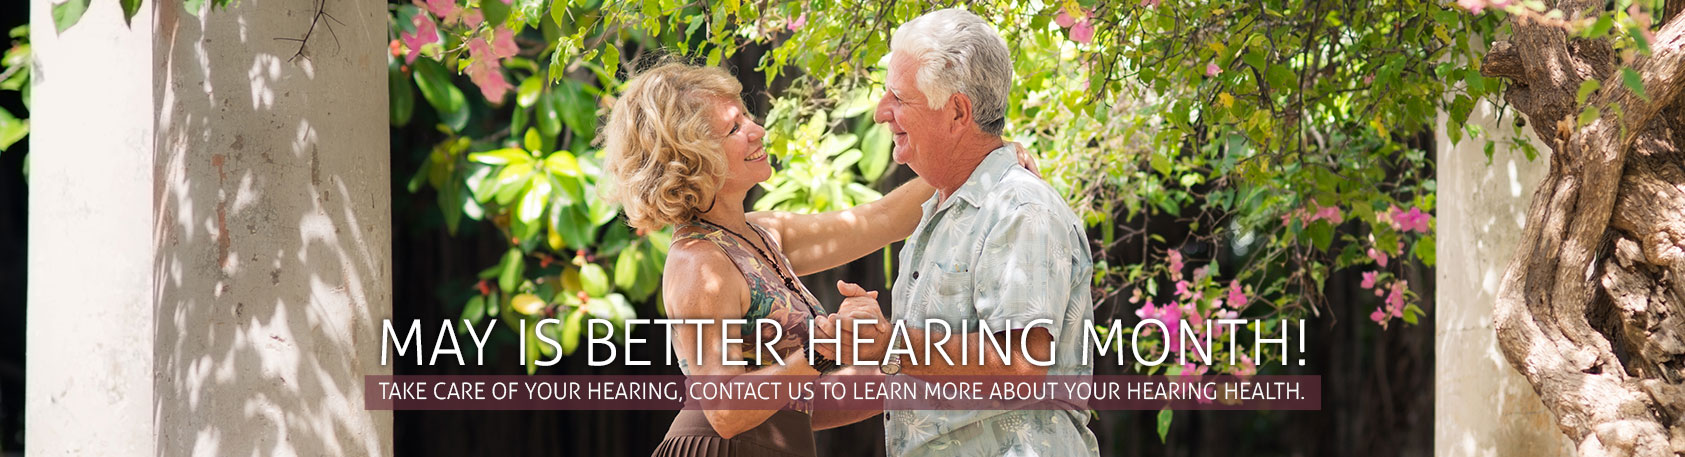 Better Hearing Month Banner - Evolve Hearing Center